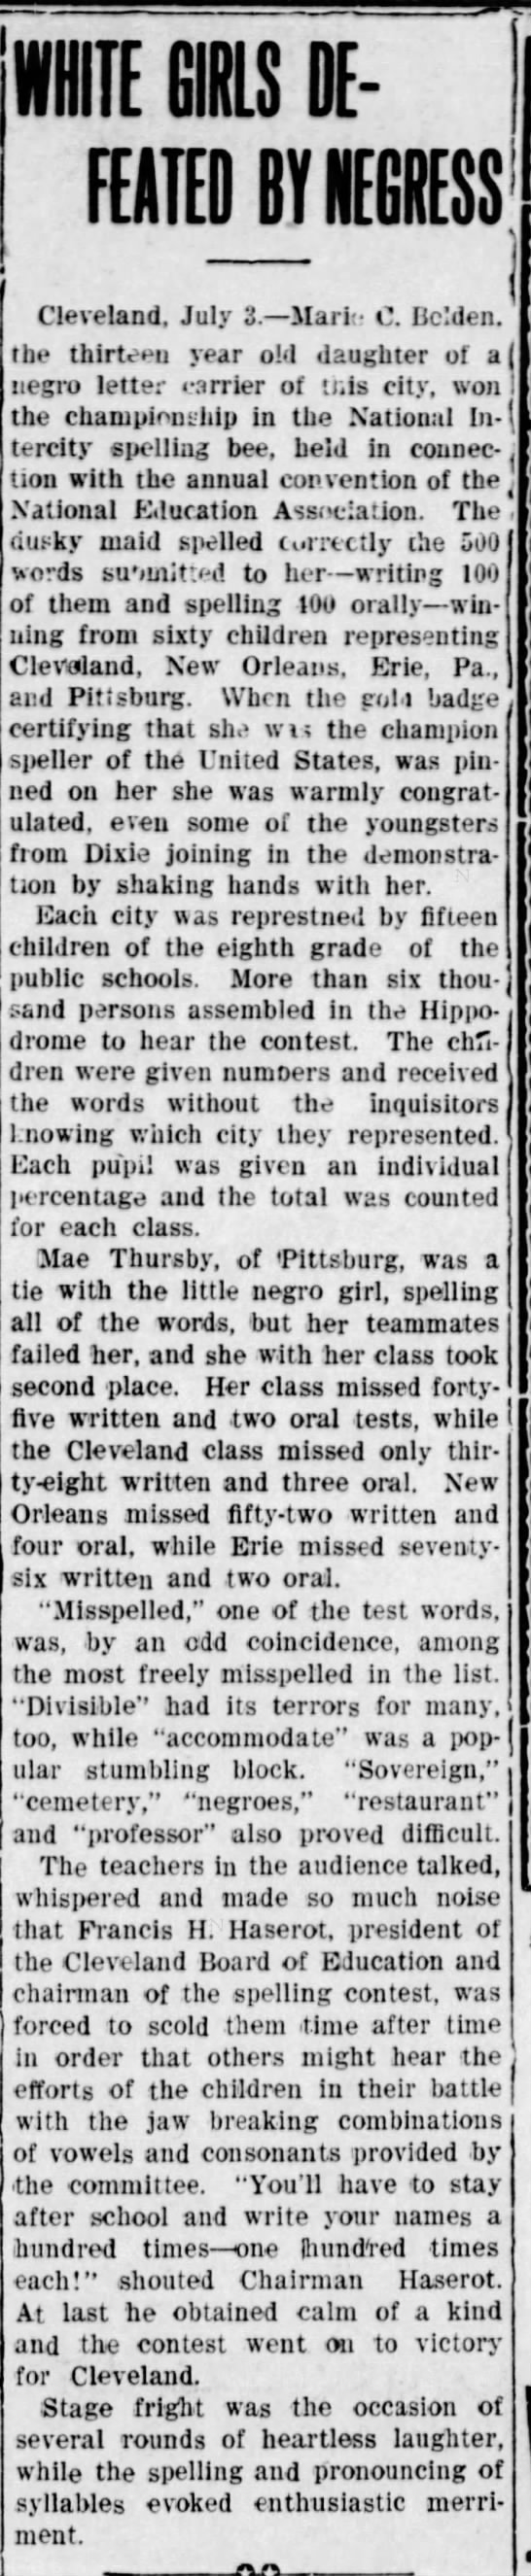 White Girls Defeated by Negress. The Vicksburg American (Vicksburg, Mississippi) July 3, 1908, p 3 -